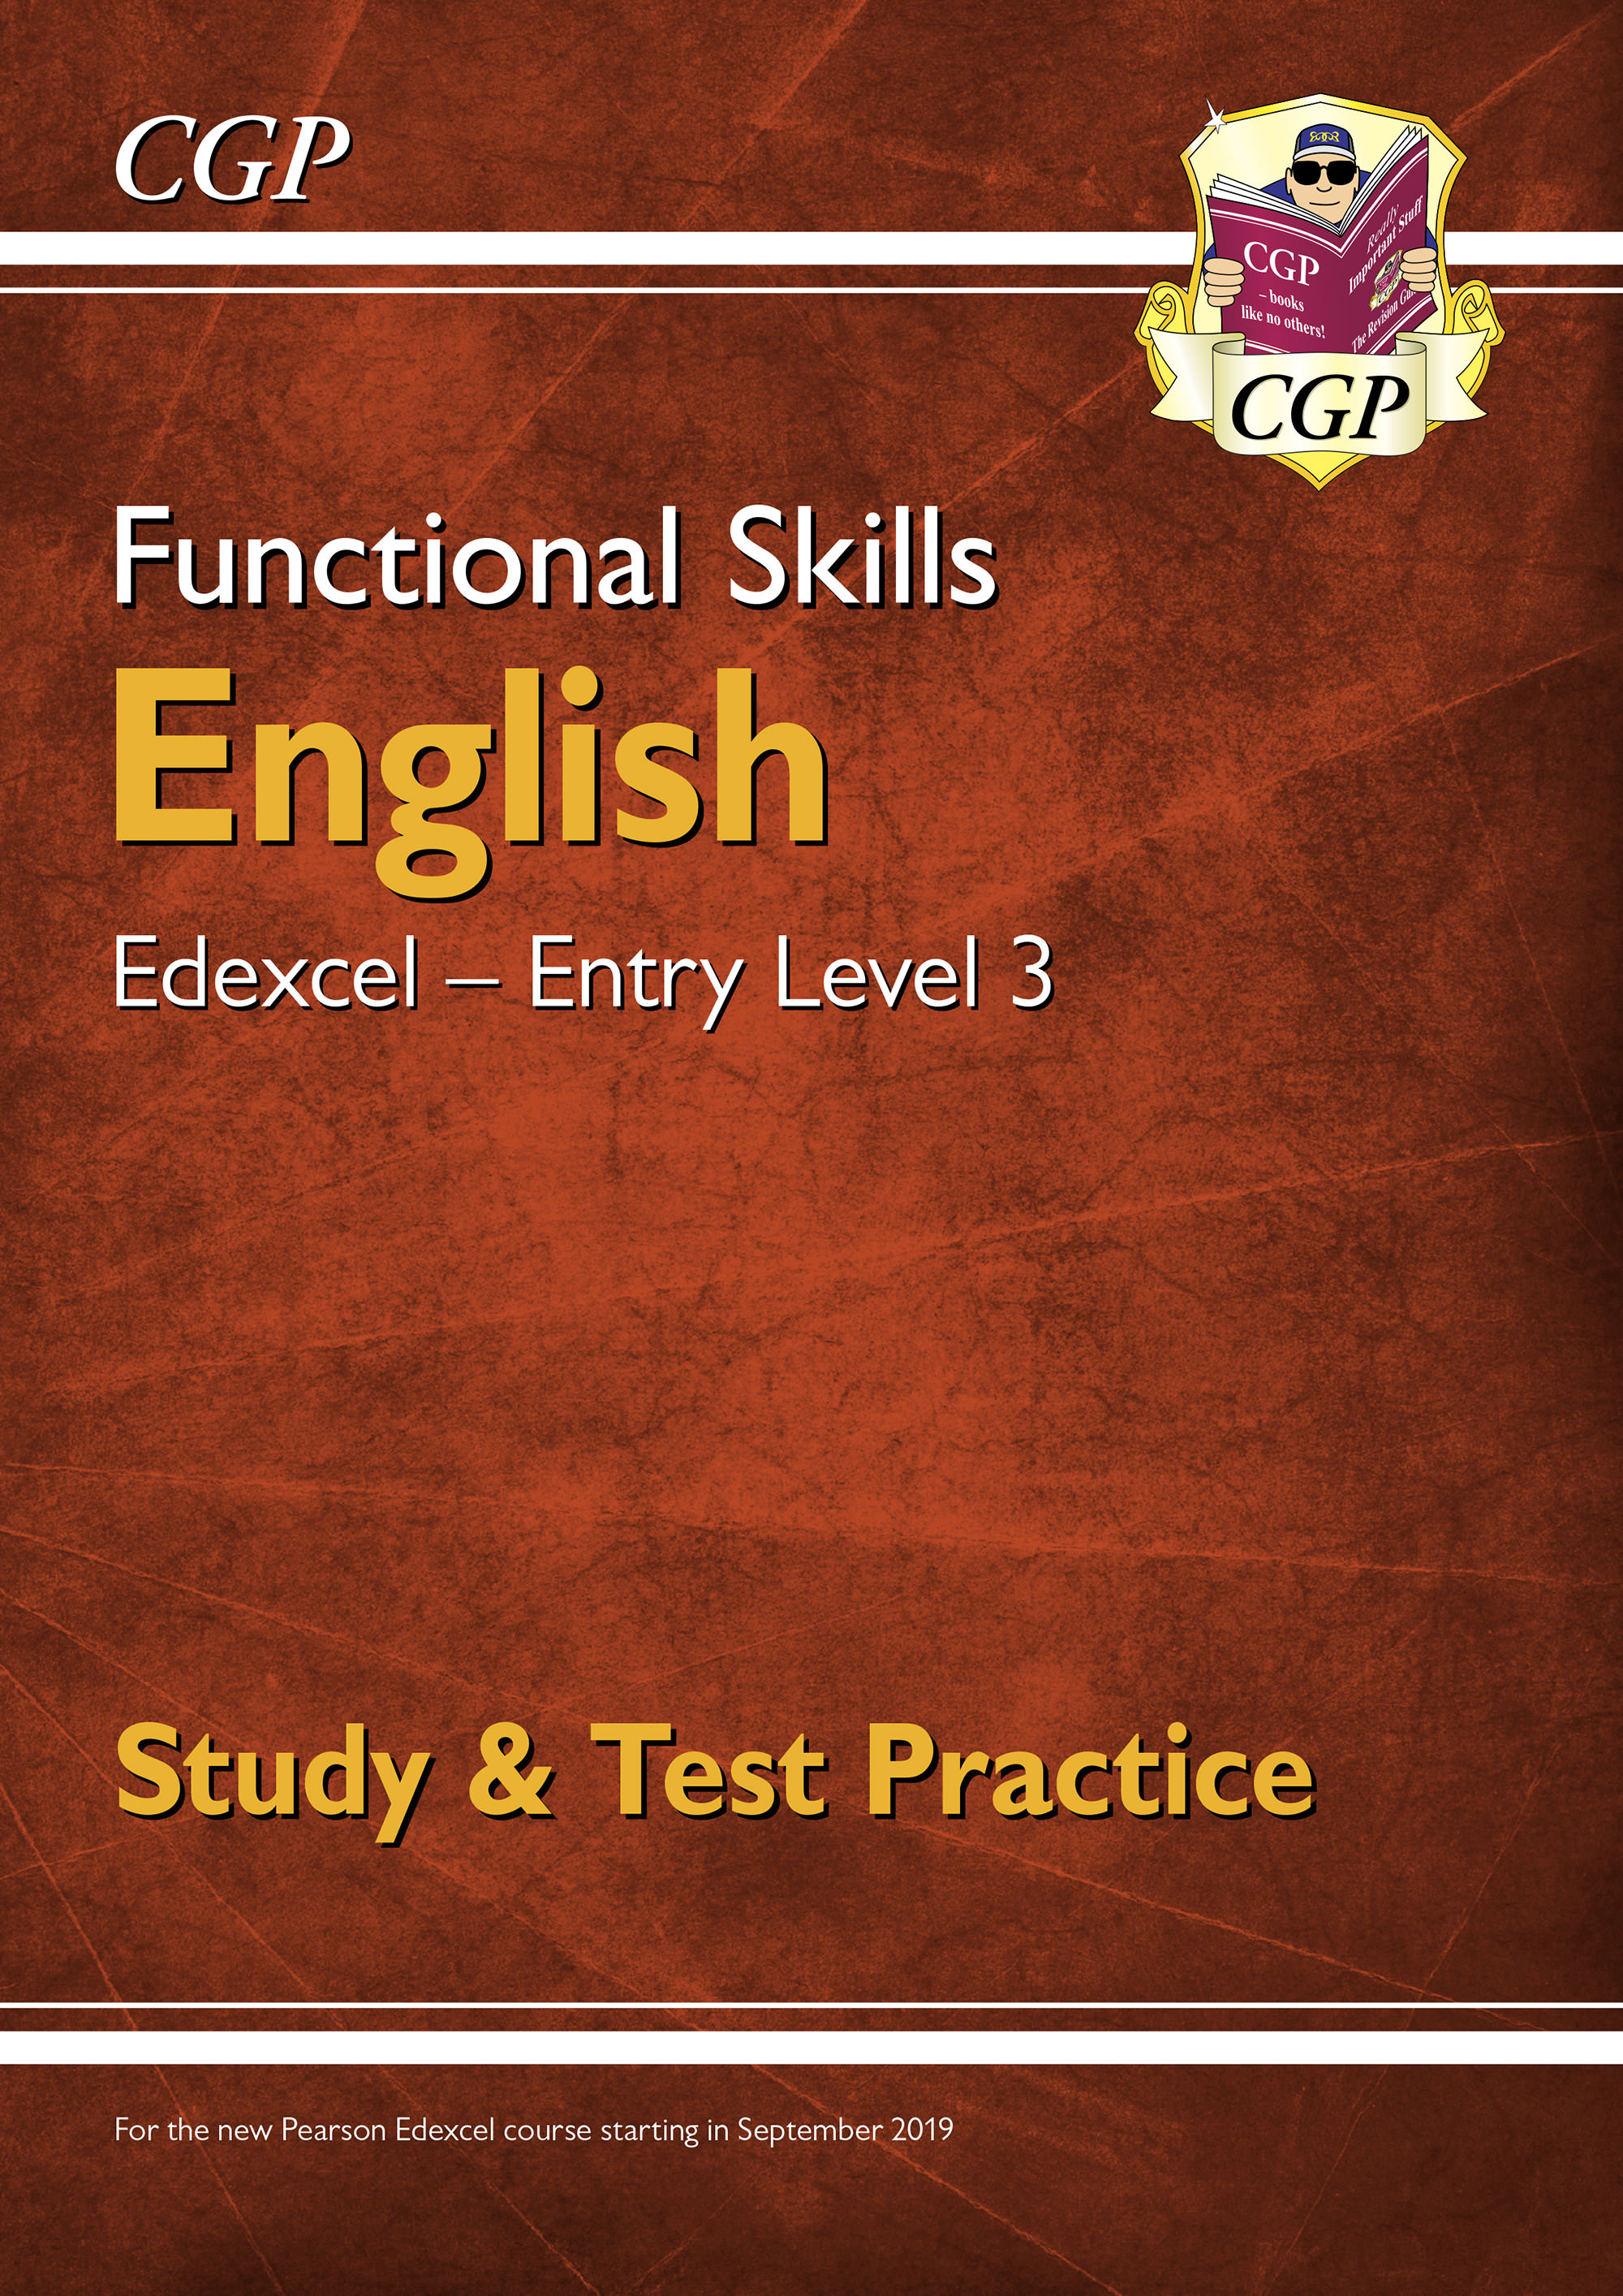 E3ESRA1DK - Functional Skills English: Edexcel Entry Level 3 - Study & Test Practice (for 2021 & bey